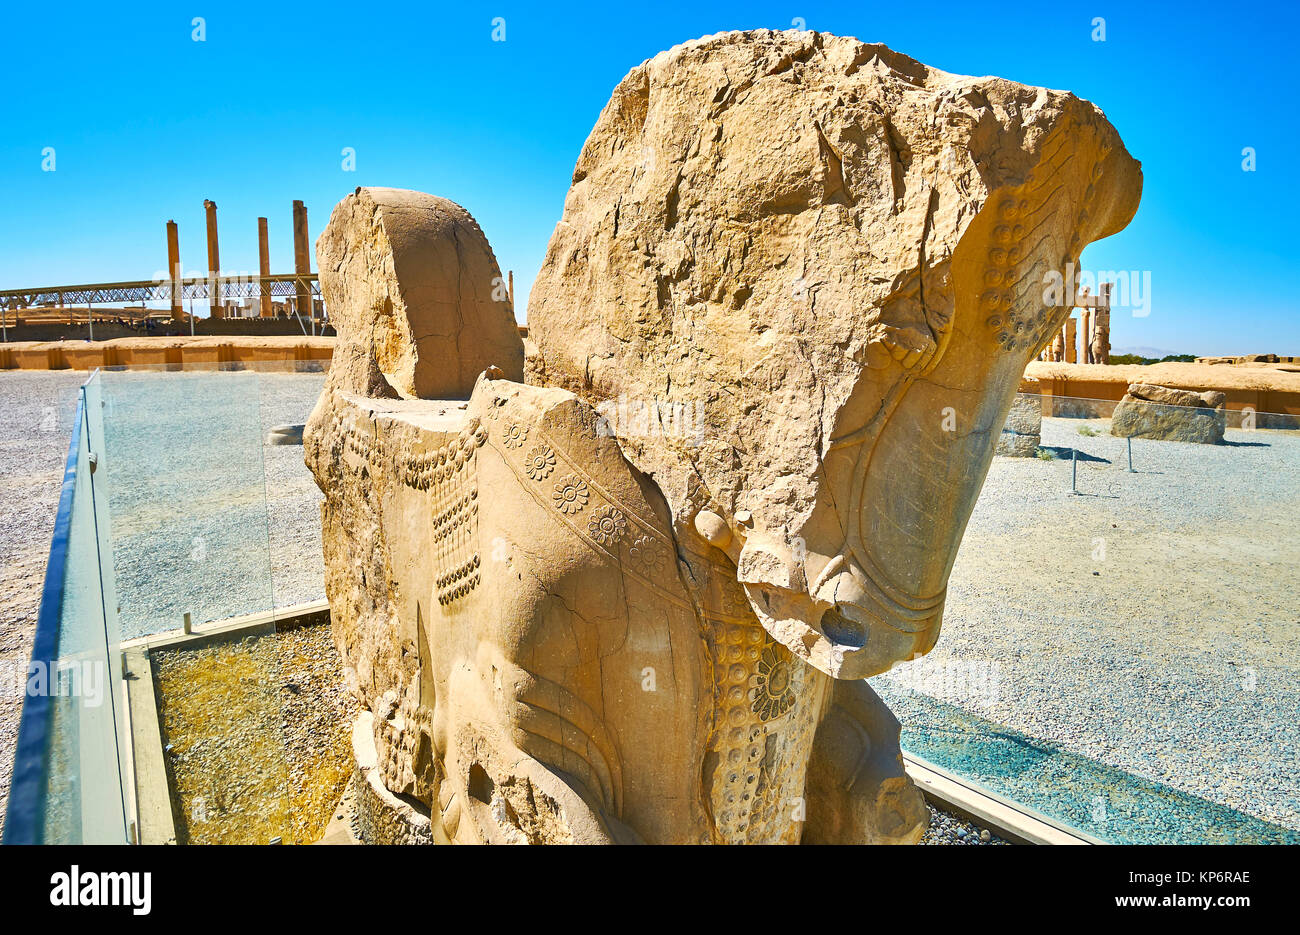 The ruins of the stone double-headed horse protome in Persepolis, the largest palace site in Middle East, Iran. - Stock Image